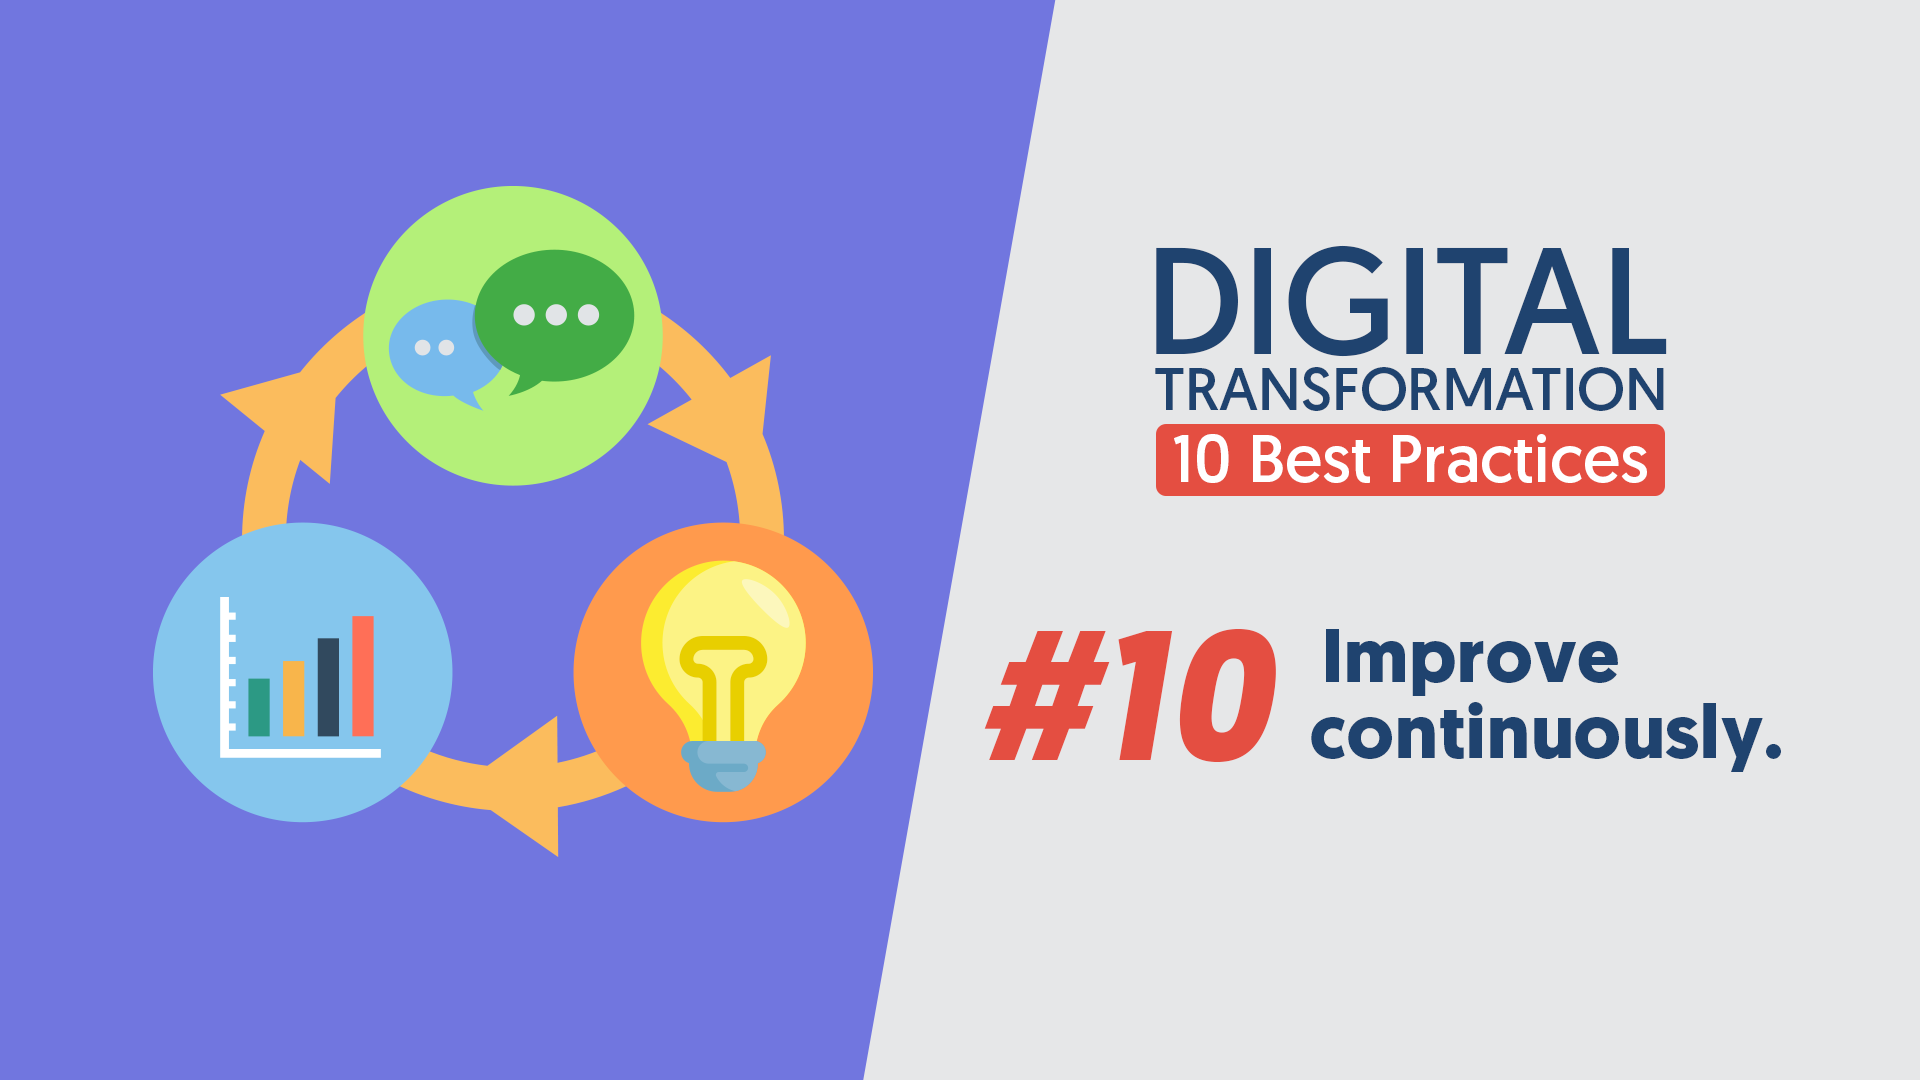 DigitalTransformation-10BestPractices-Series-ImproveContinuously